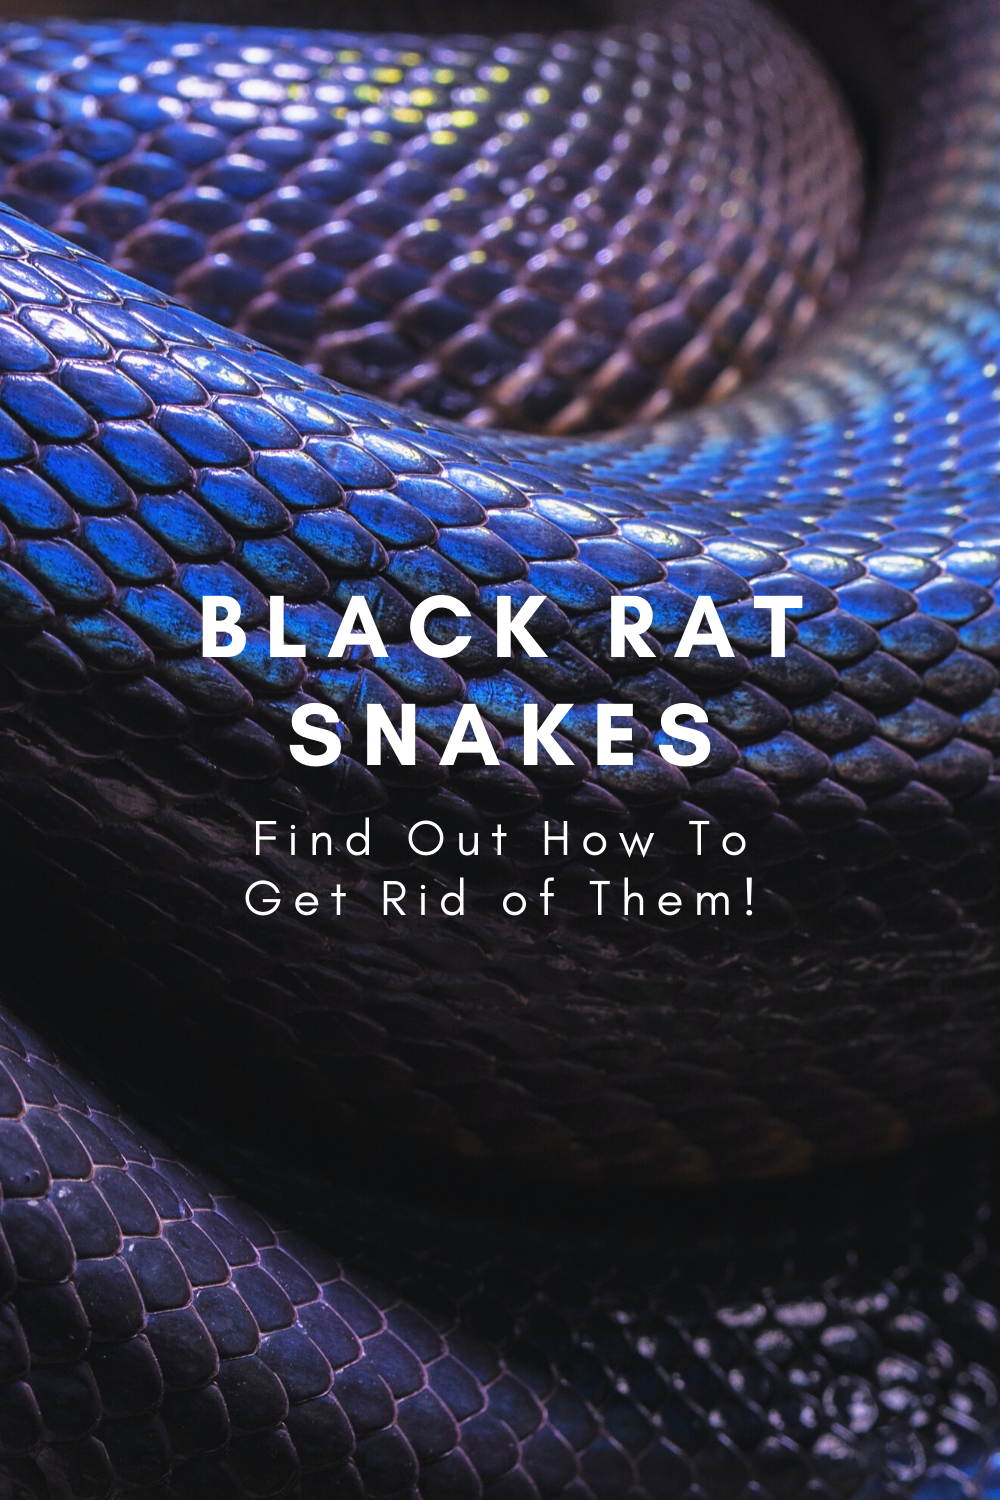 Get rid of black rat snakes